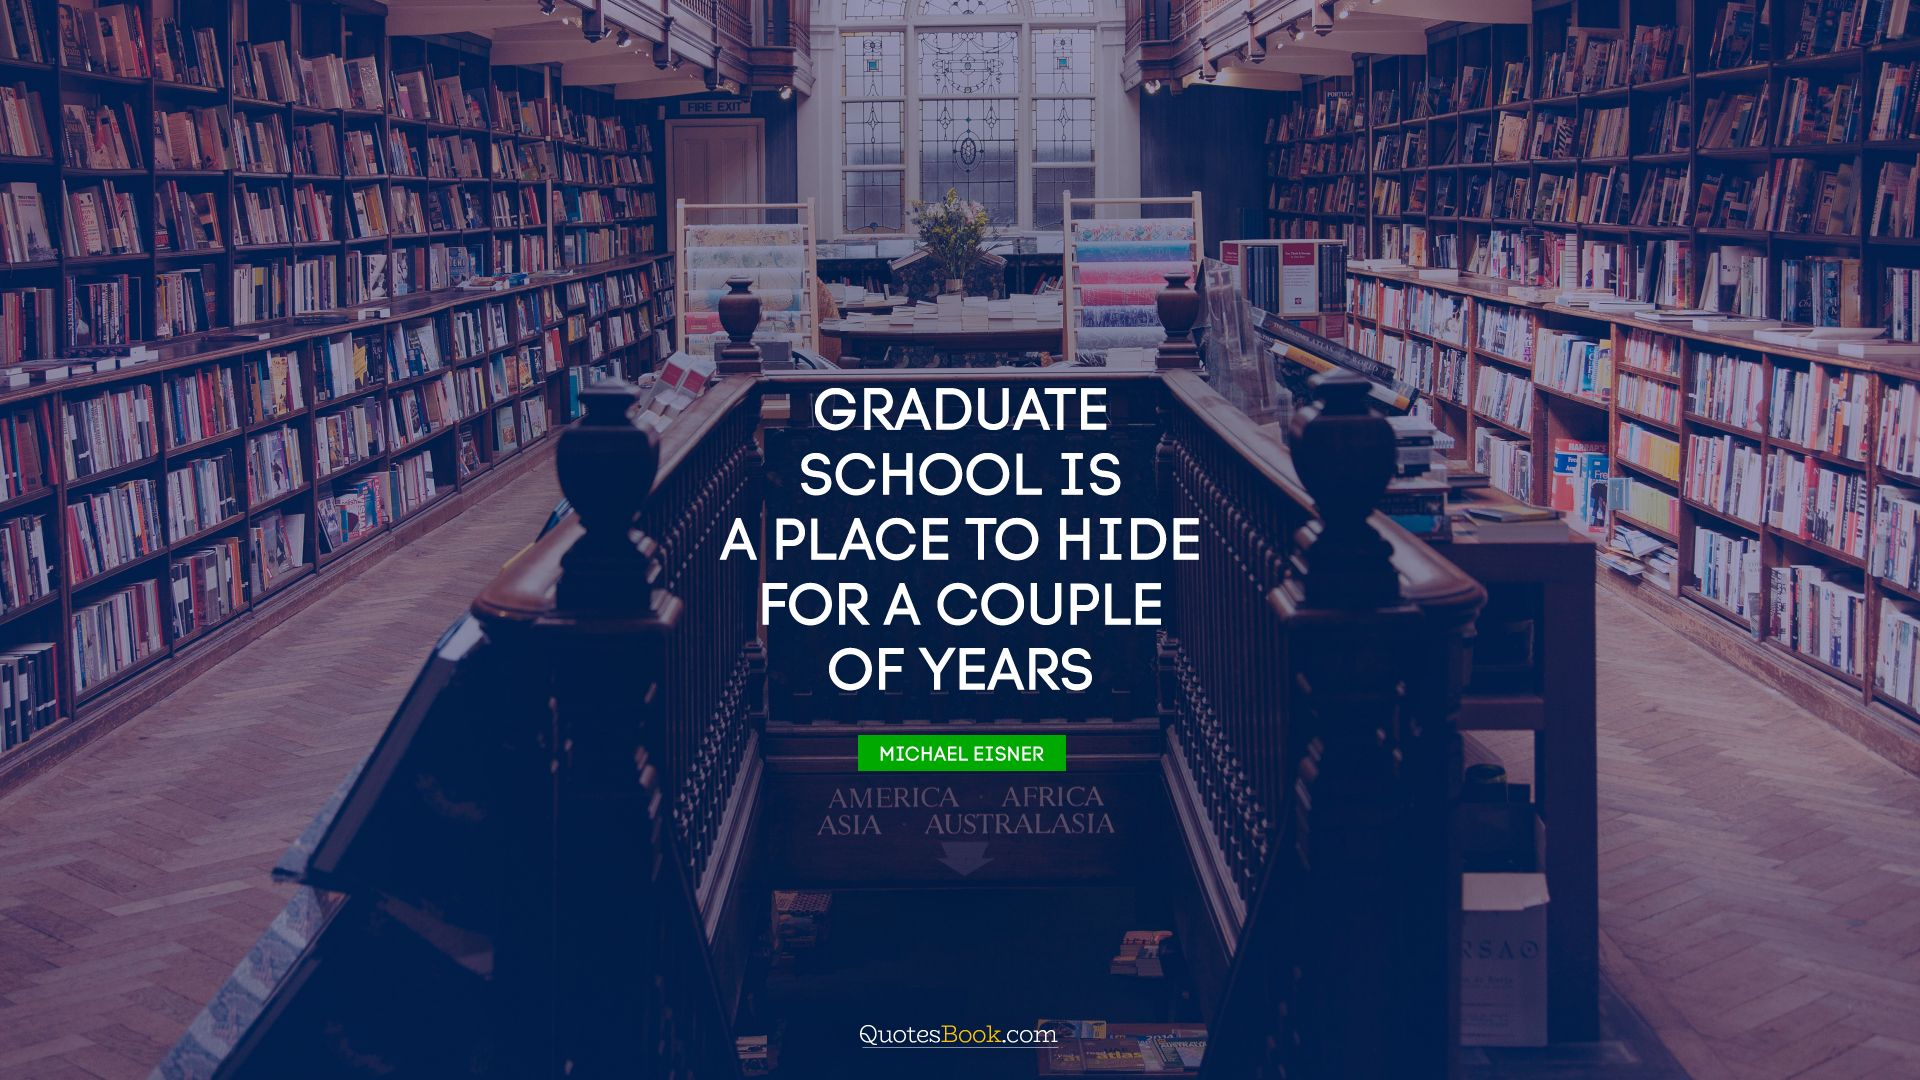 Graduate school is a place to hide for a couple of years. - Quote by Michael Eisner